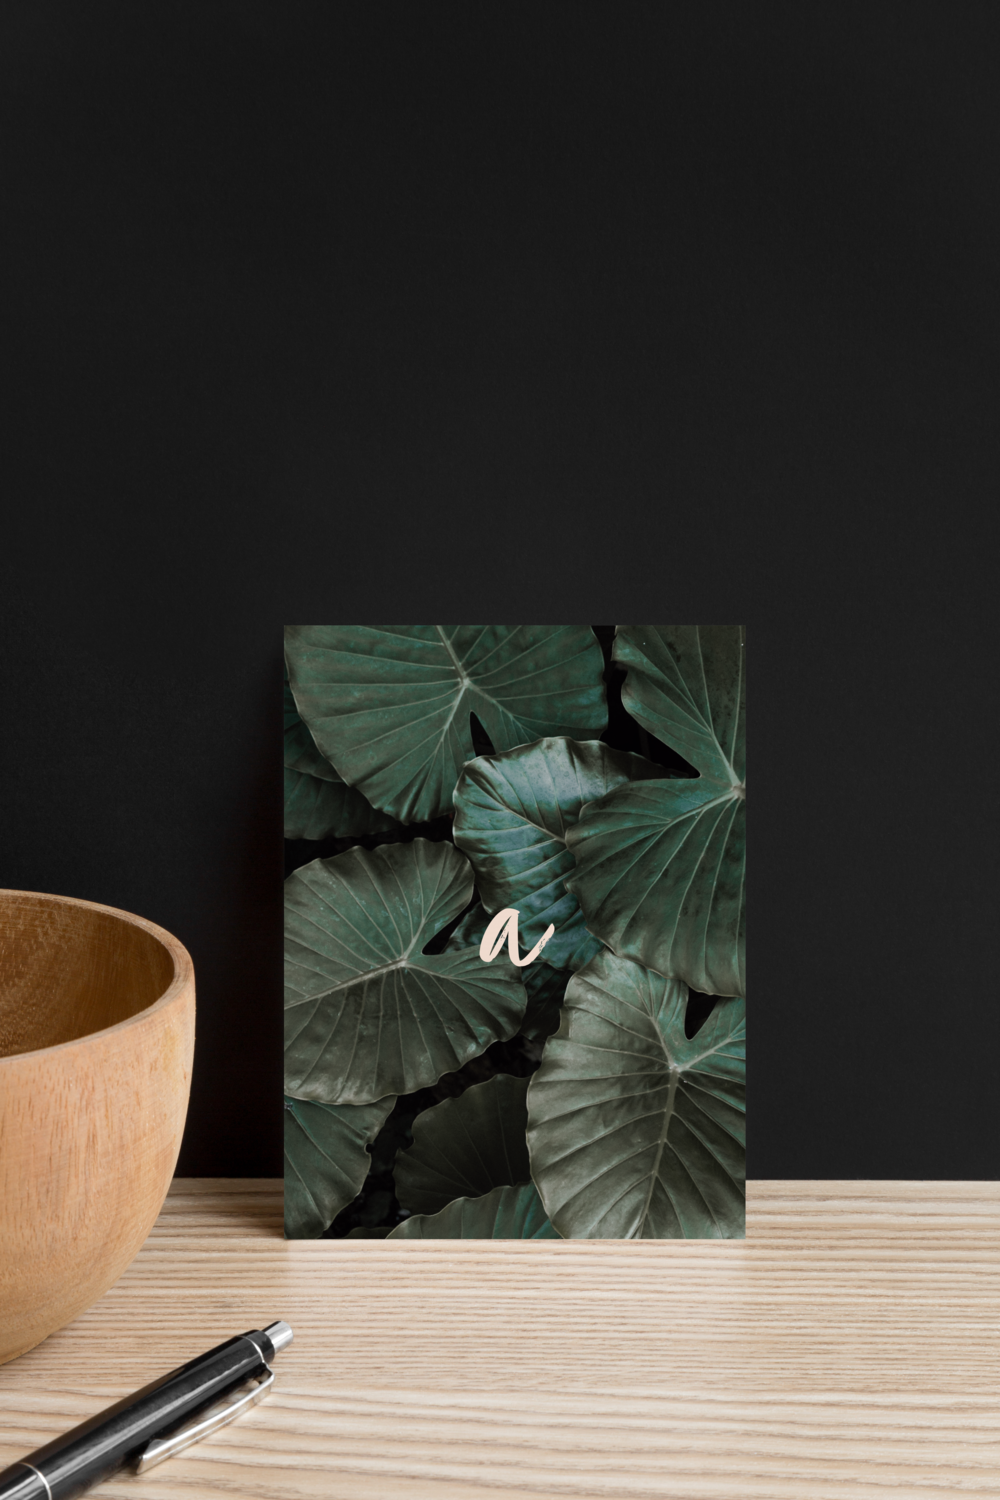 Postcard designed for Alexa mazzarello with her logo and leaf photo shown on a wooden shelf next to a black pen and a wooden bowl